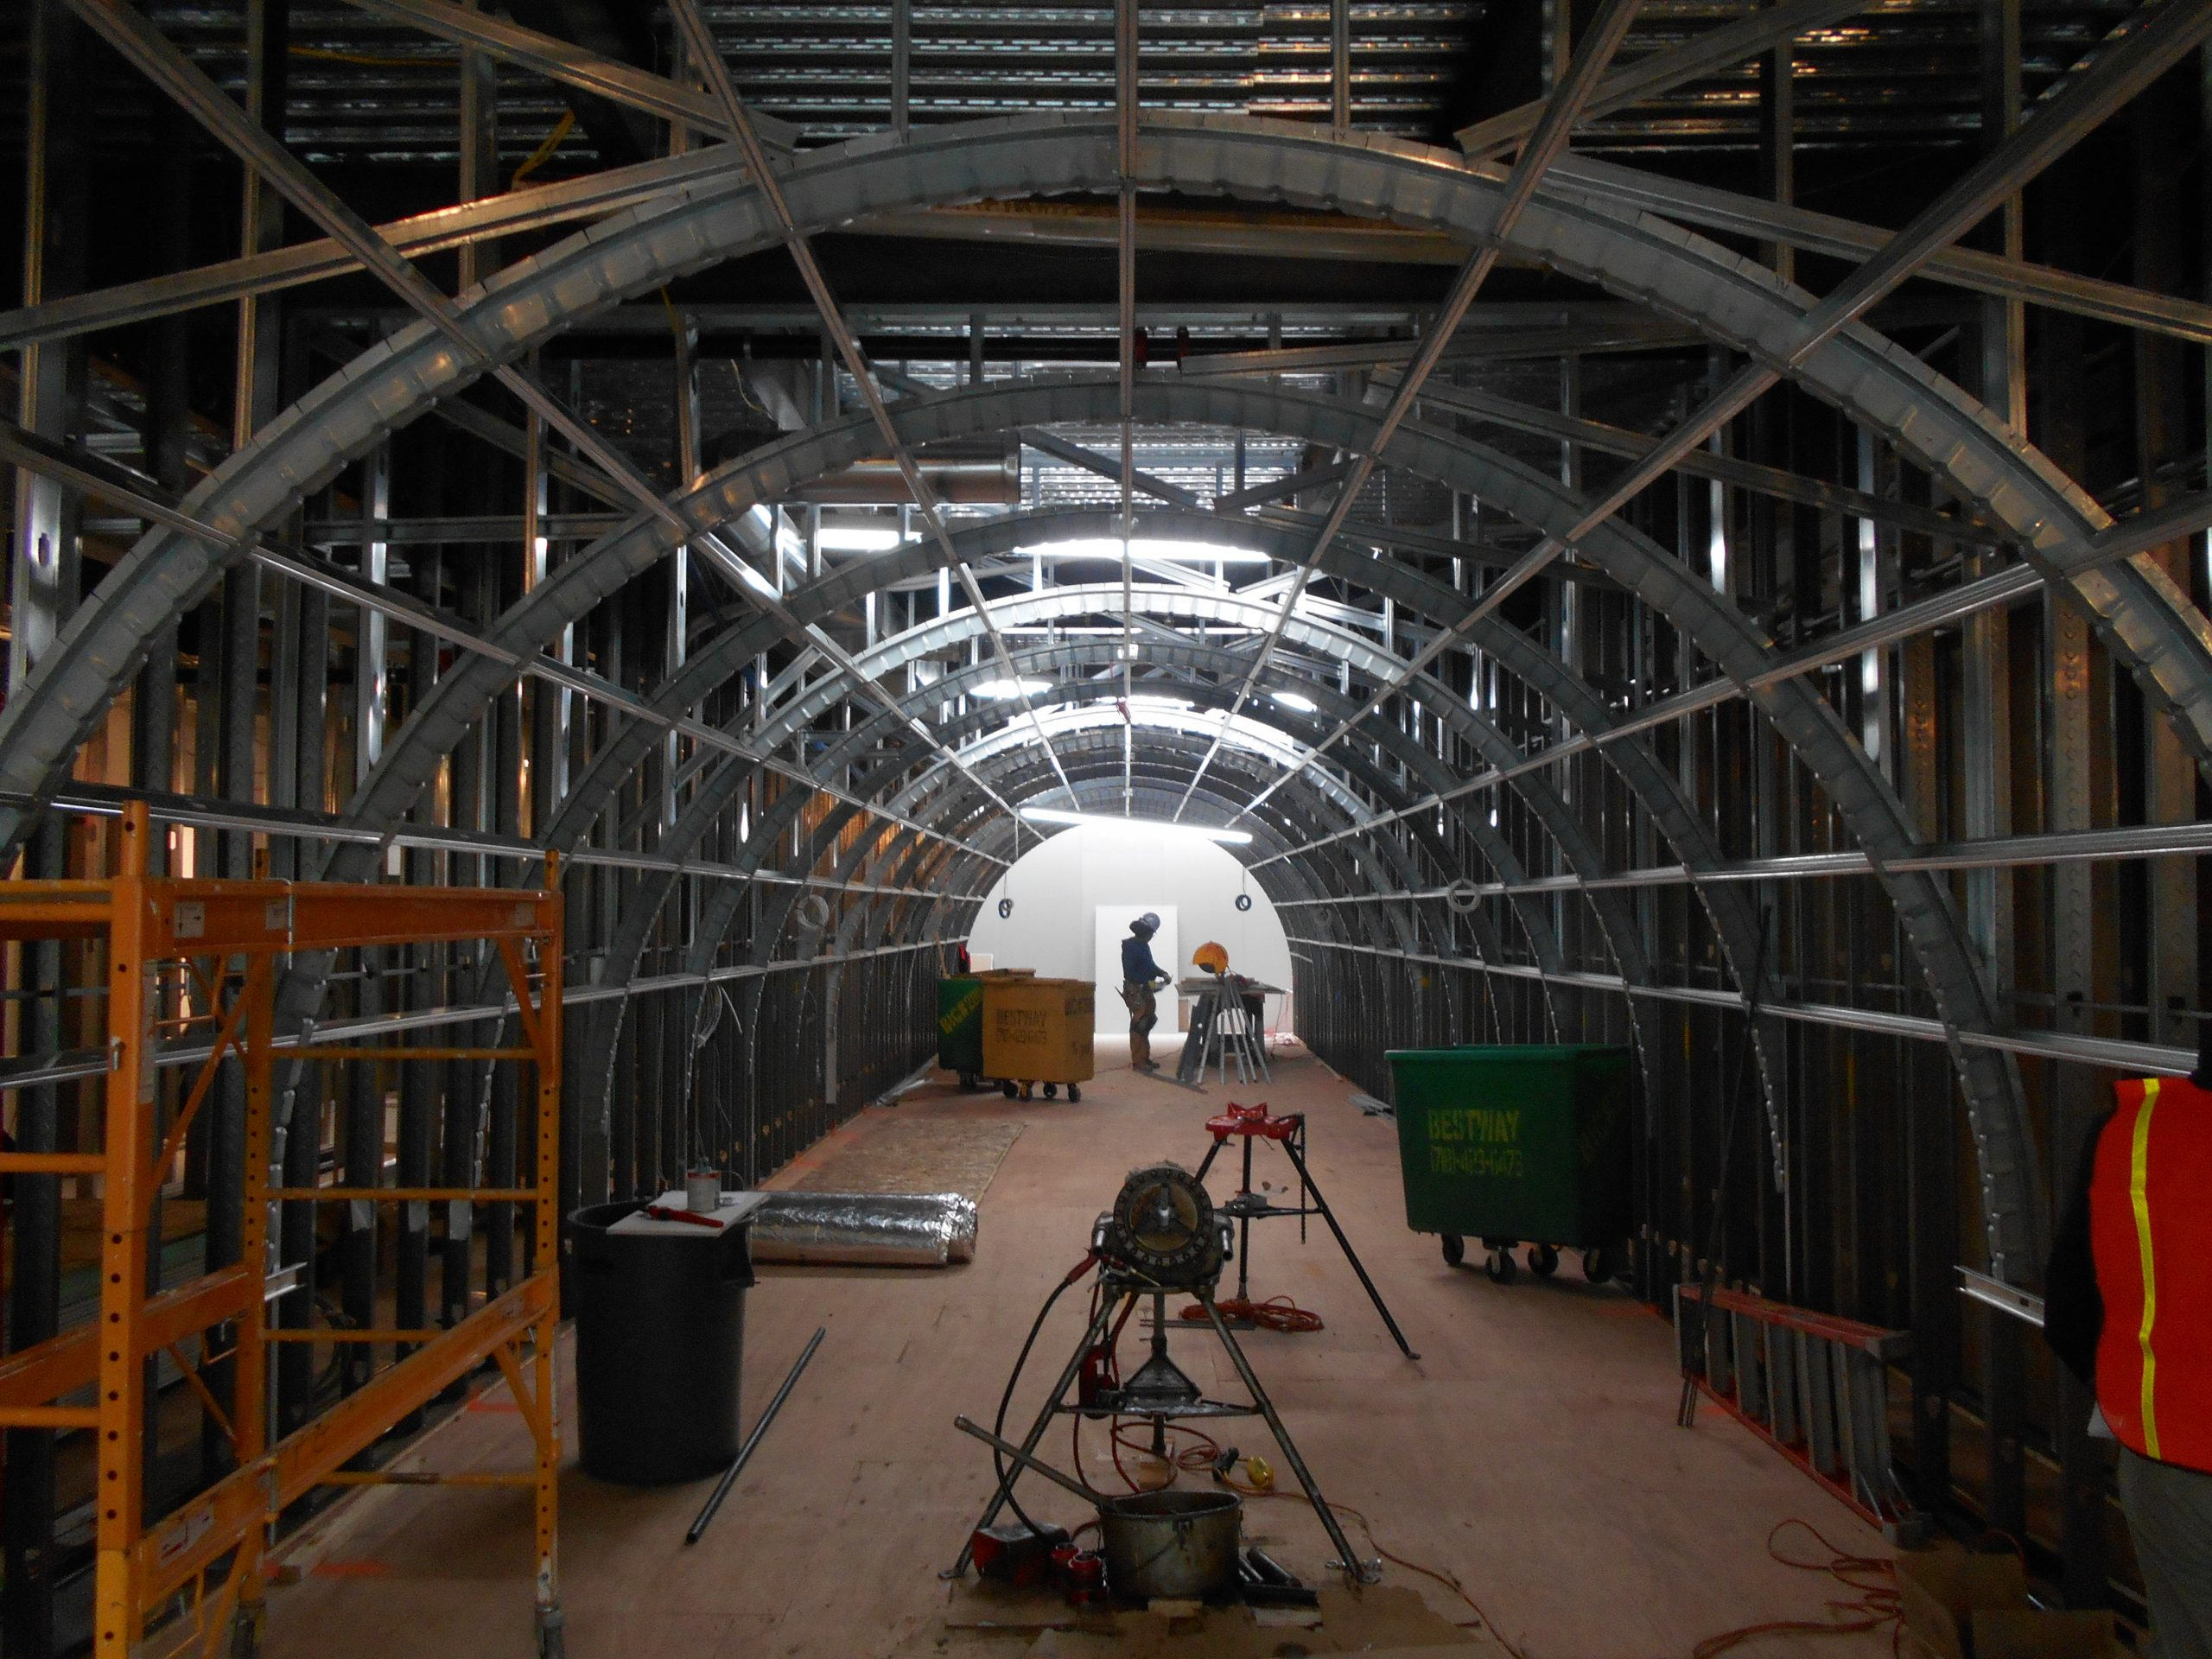 curved tunnel of light gauge steel framing